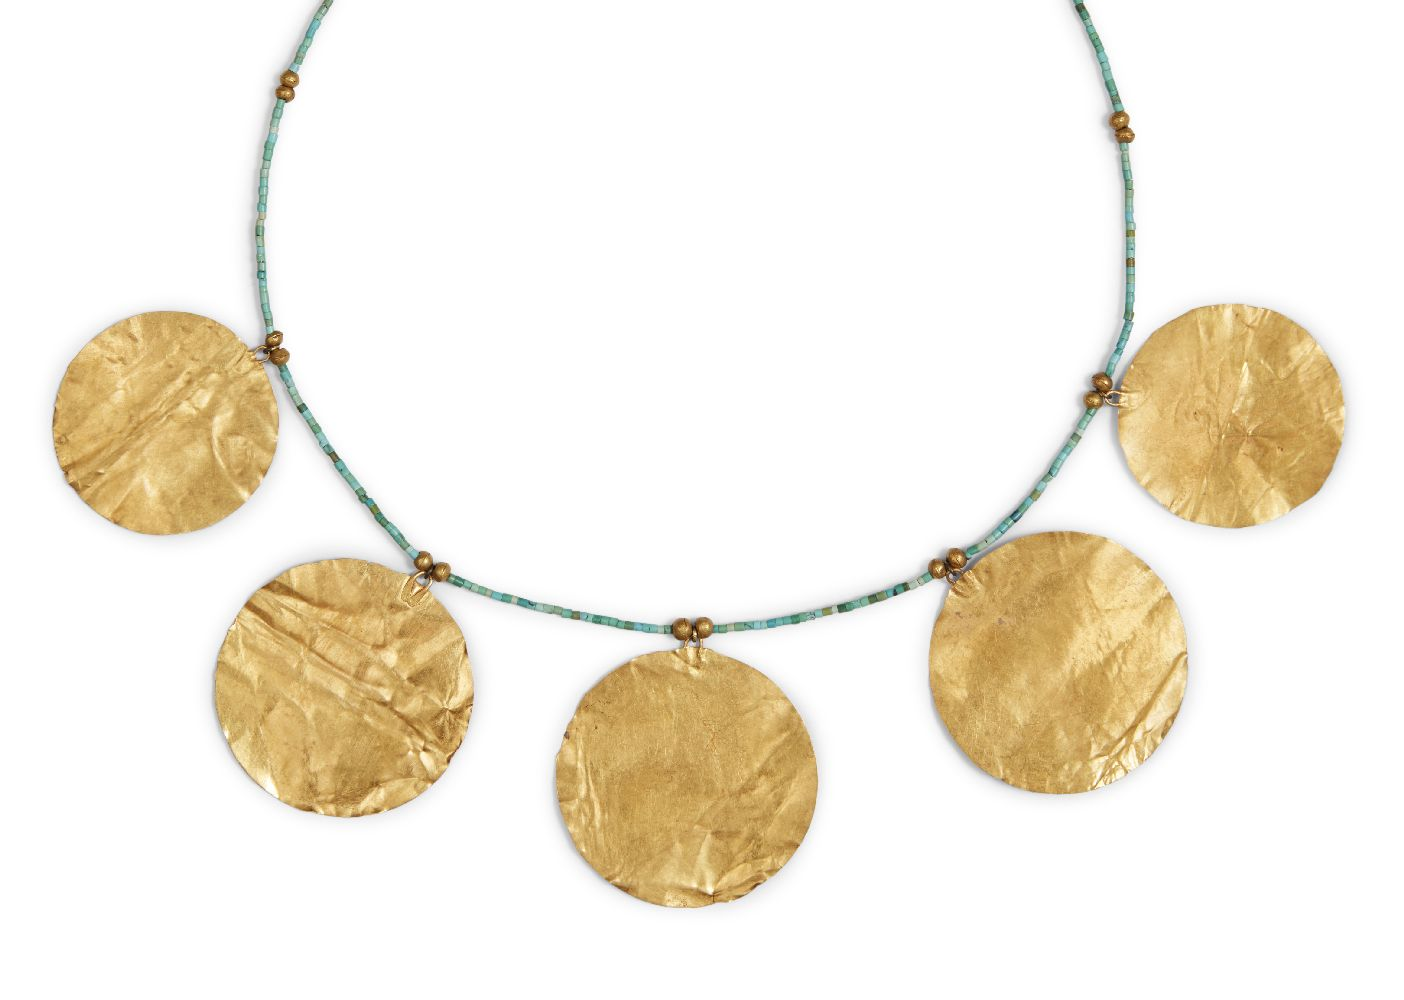 Lot 44 - An ancient and modern sheet gold and turquoise necklace, comprised of five large flat gold discs